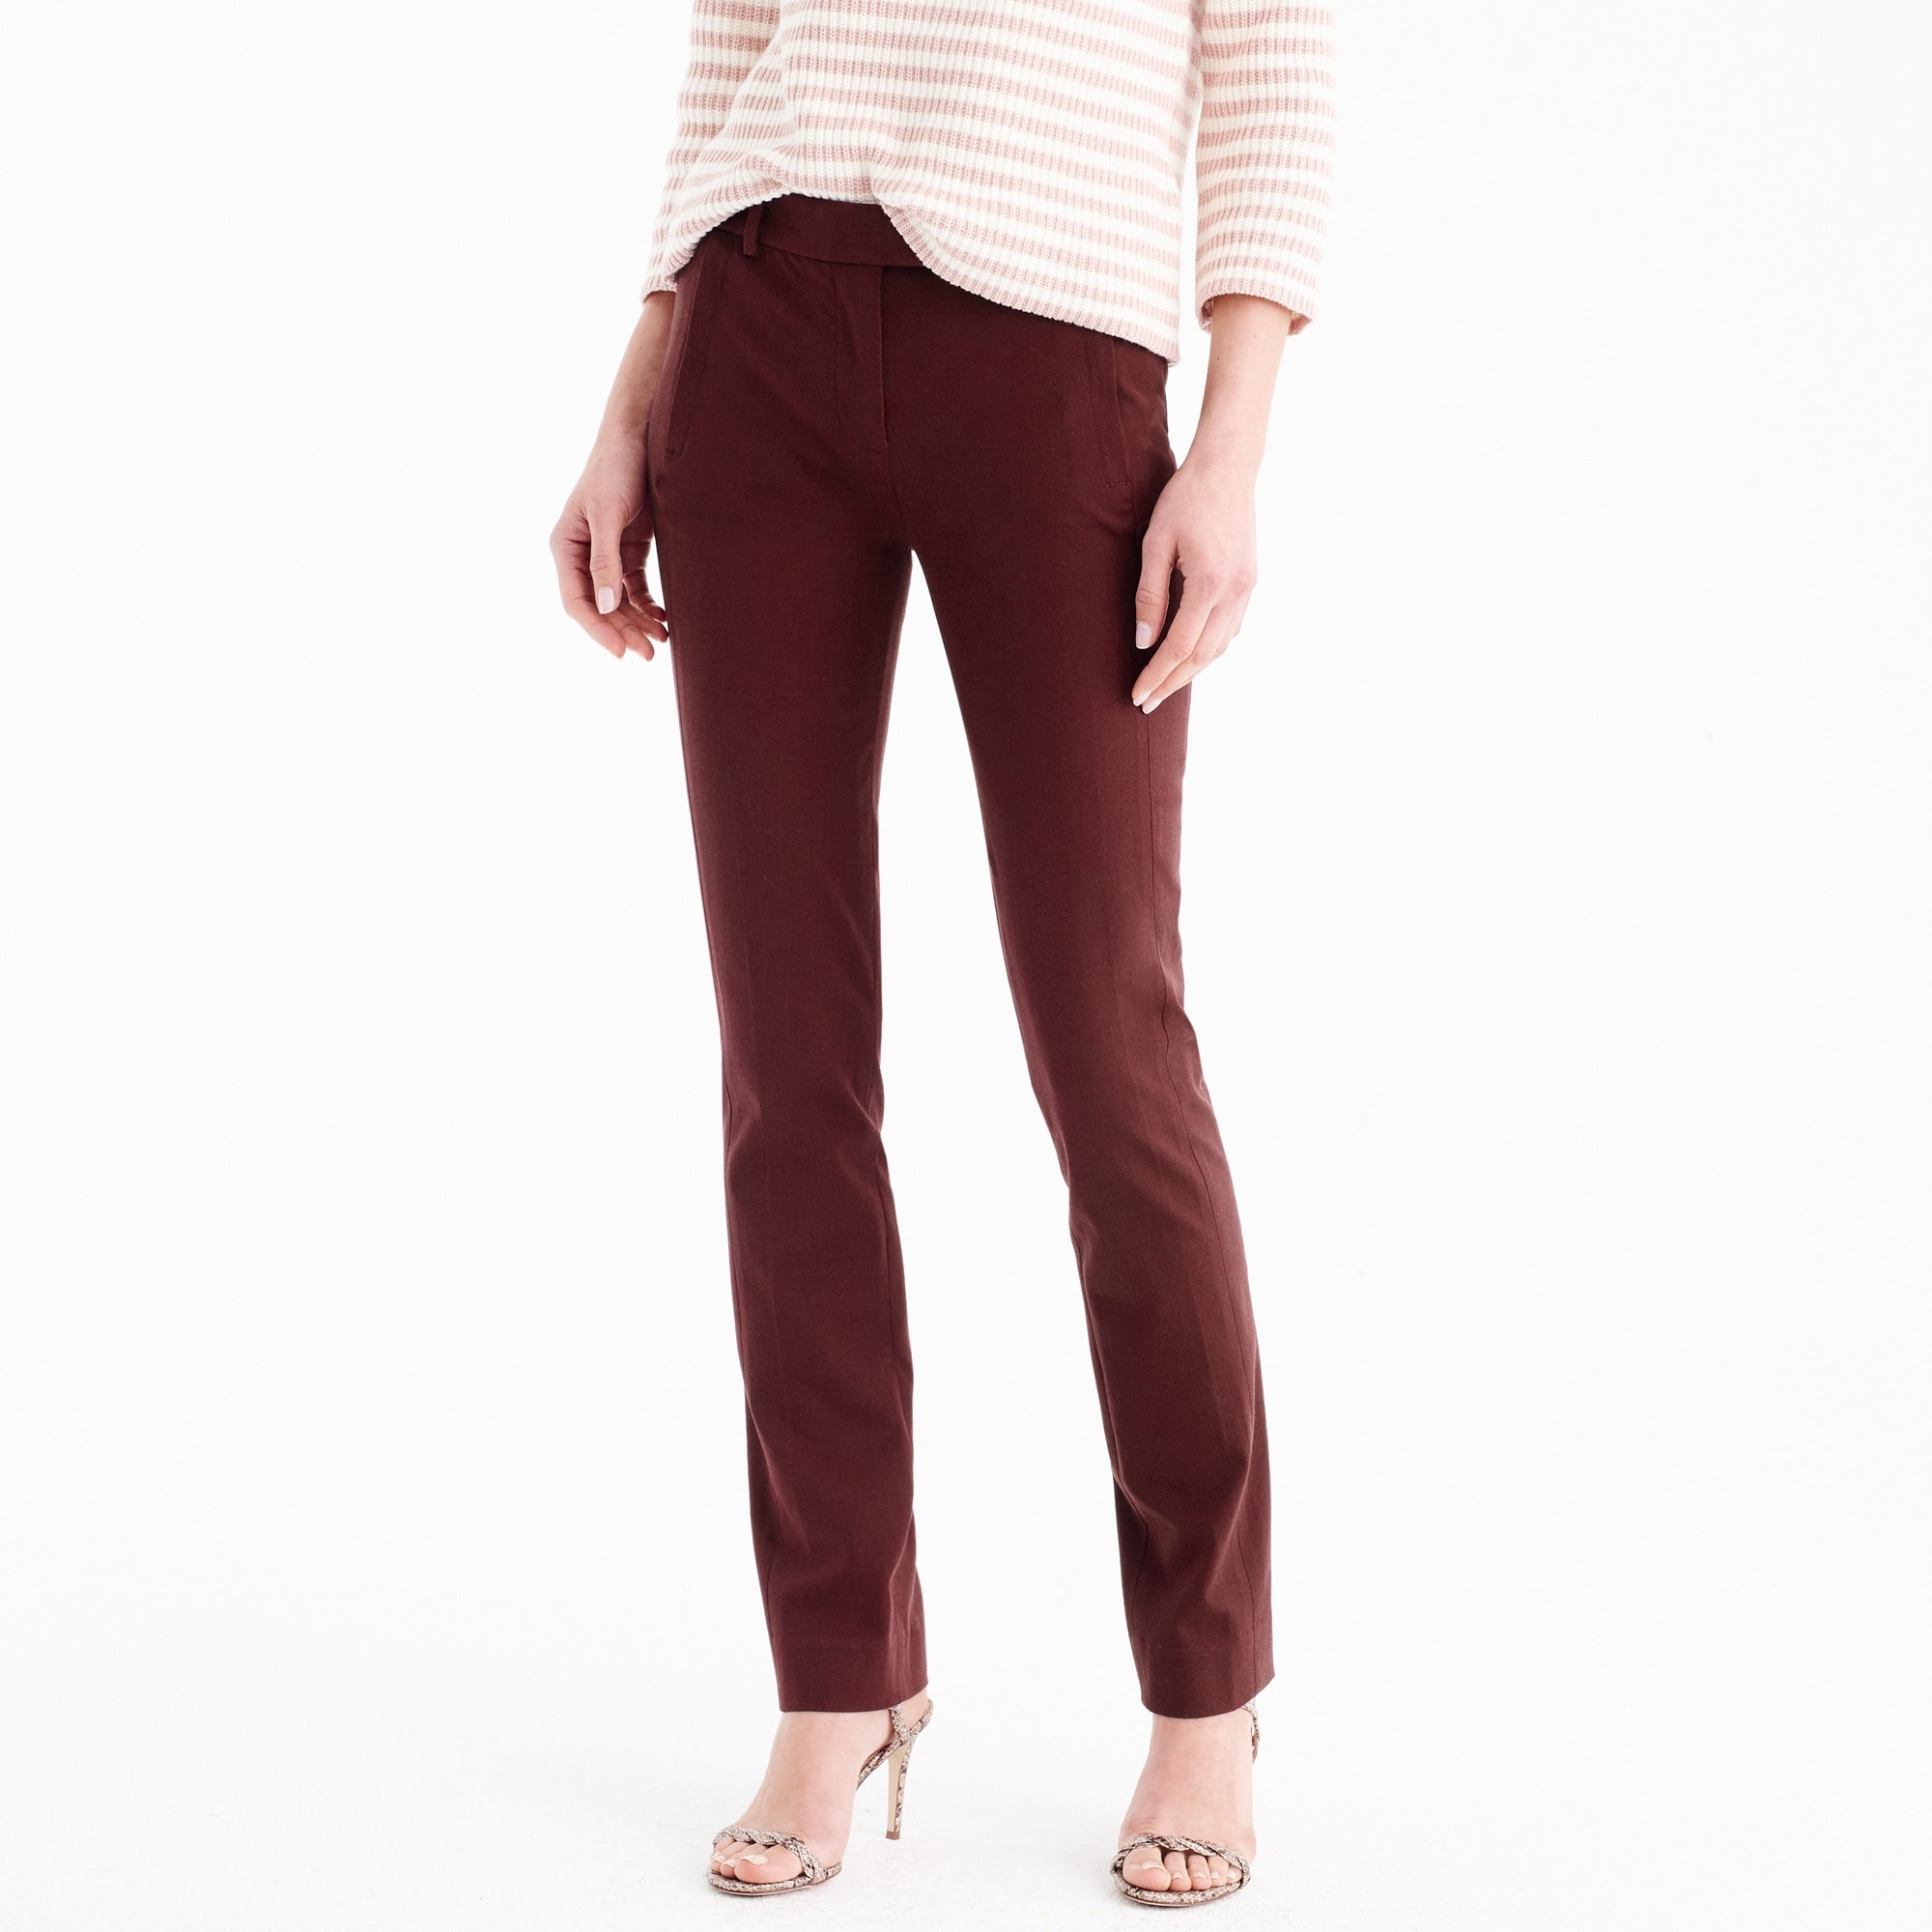 Image 2 for Tall Maddie pant in two-way stretch cotton